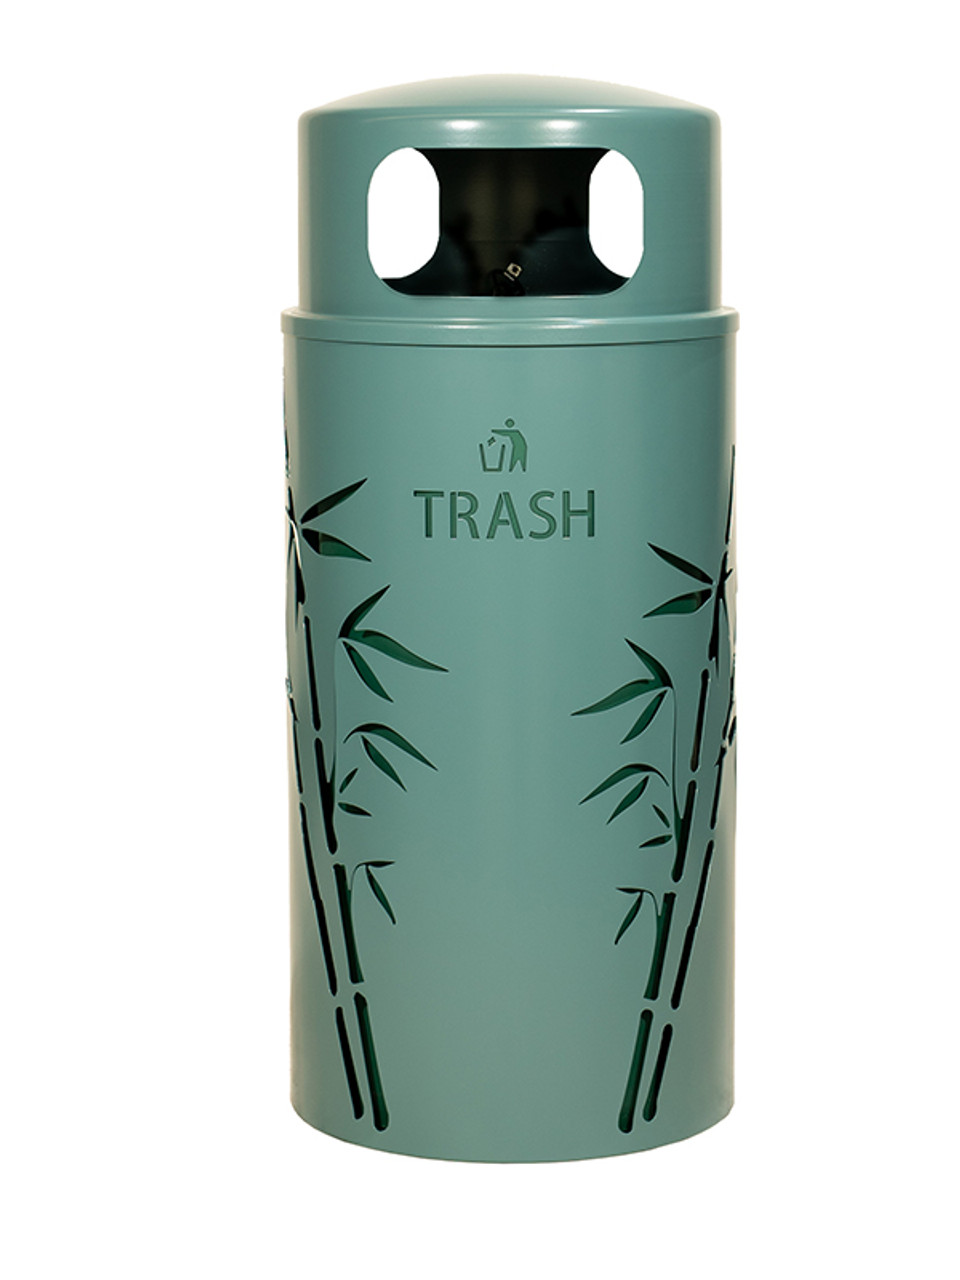 33 Gallon Nature Series Green Trash Can w/Anchor and Pole Kit (Bamboo Design)